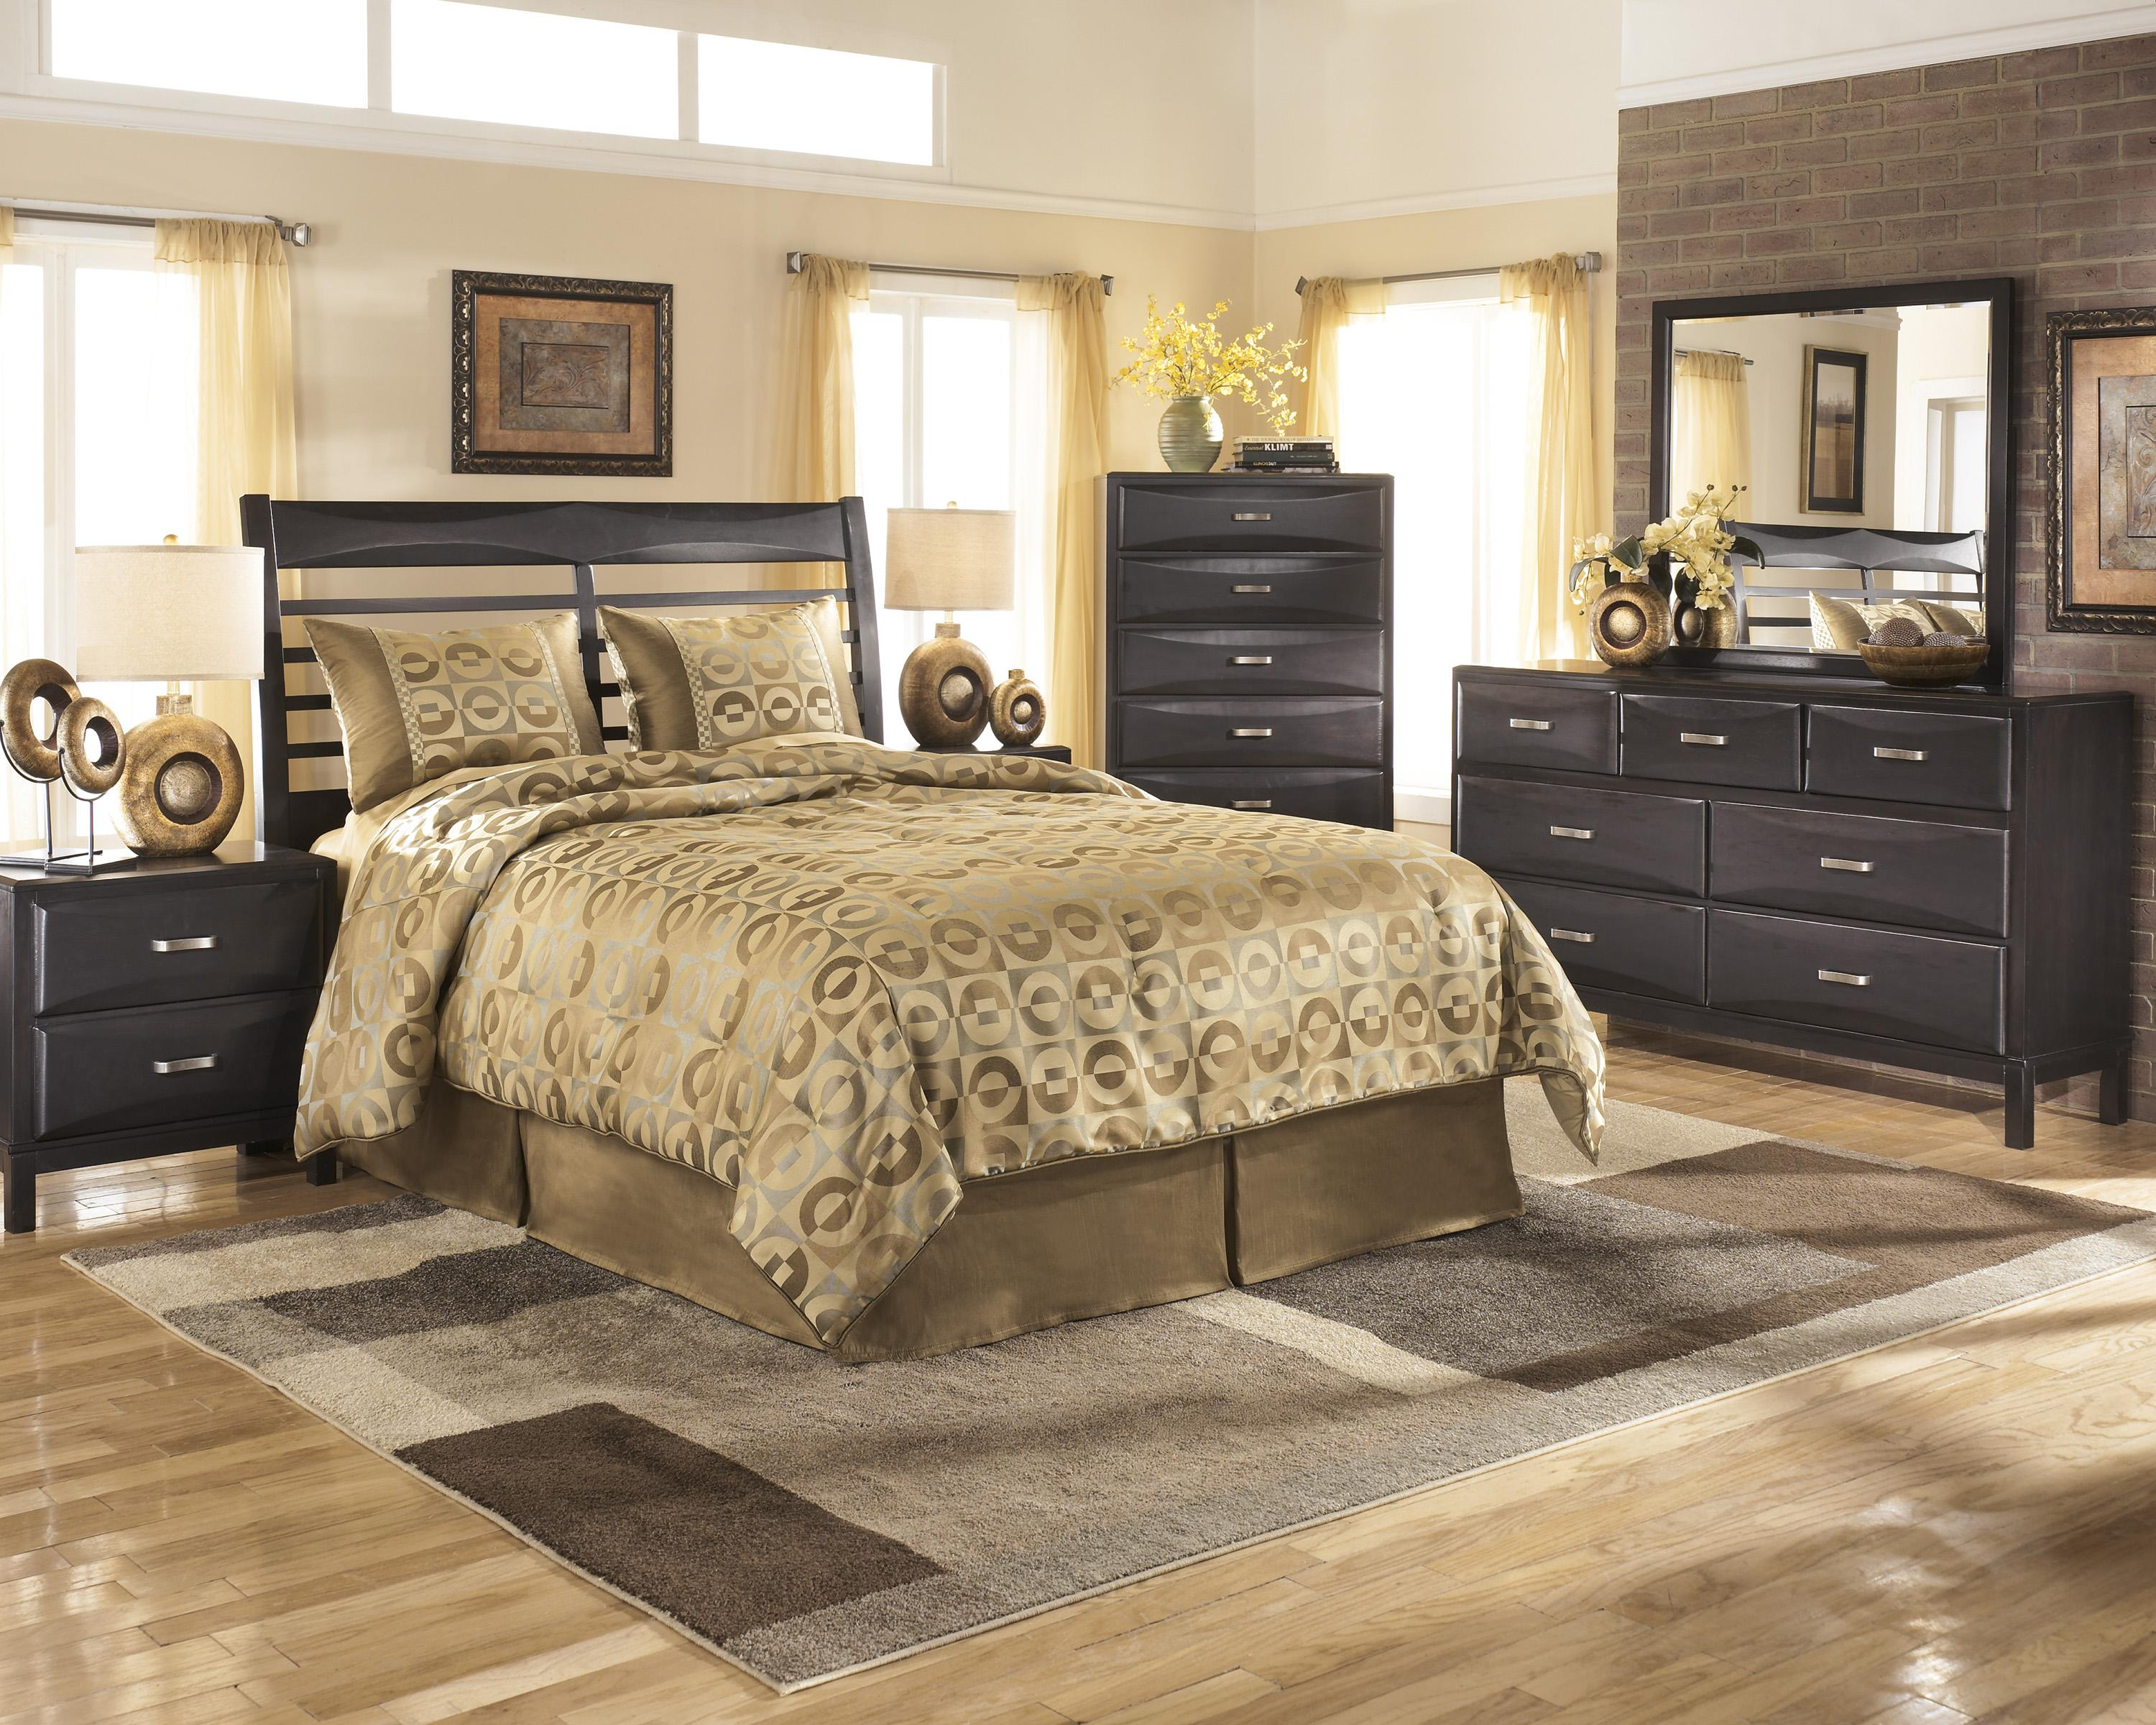 Ashley Furniture Kira Queen Bedroom Group Olinde 39 S Furniture Bedroom Groups